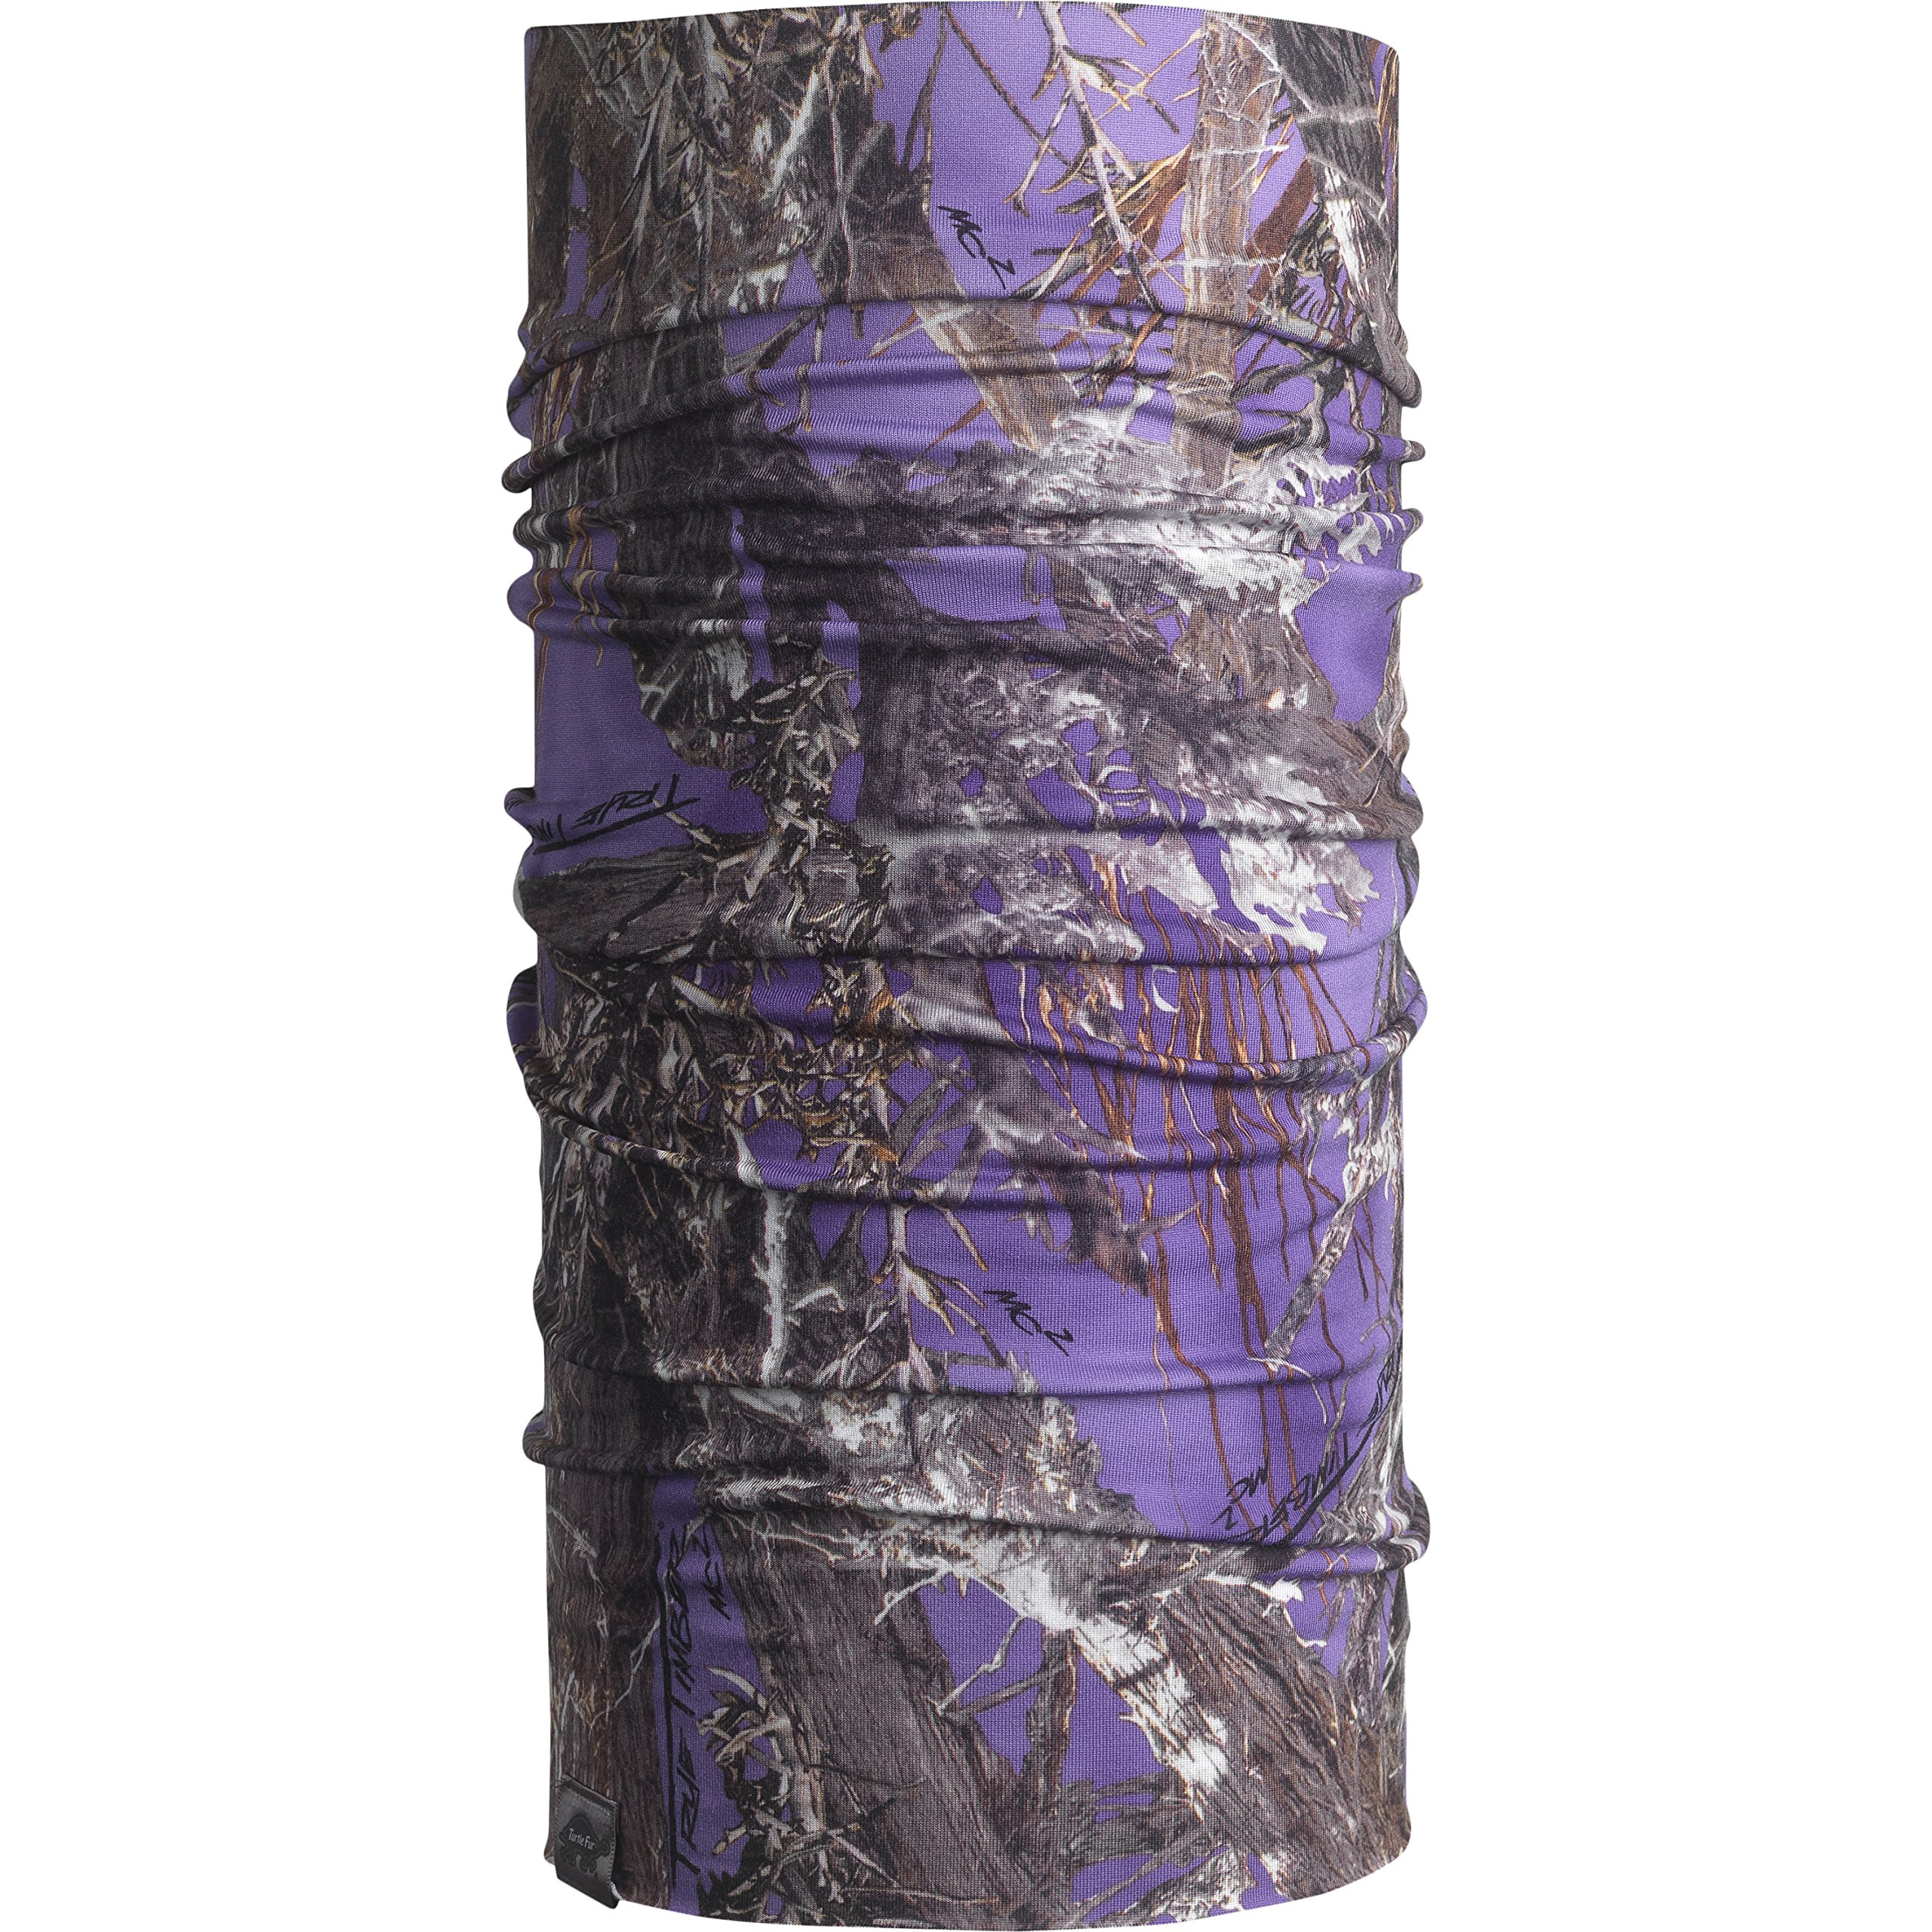 Turtle Fur Camo - Totally Tubular, Lightweight Neck Warmer, TrueTimber MC2 Purple